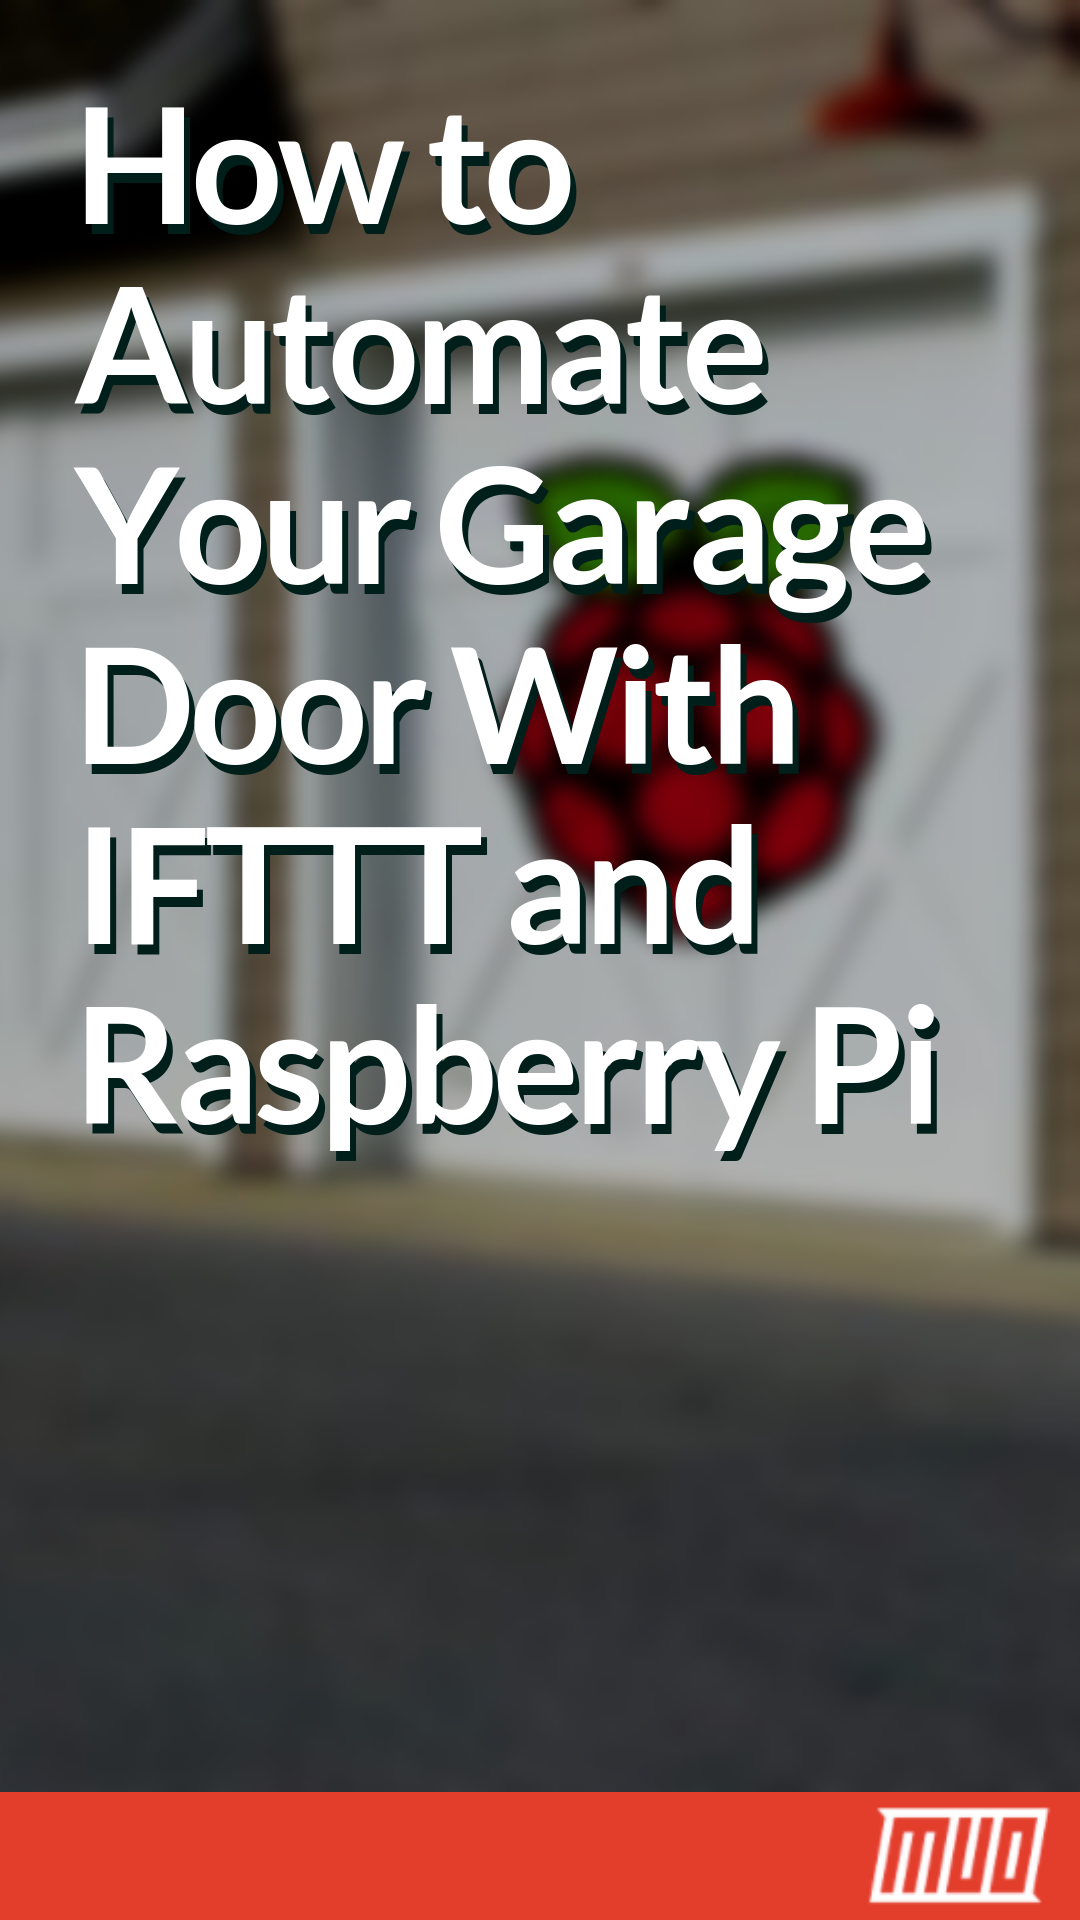 How to Automate Your Garage Door With IFTTT and Raspberry Pi in 2019